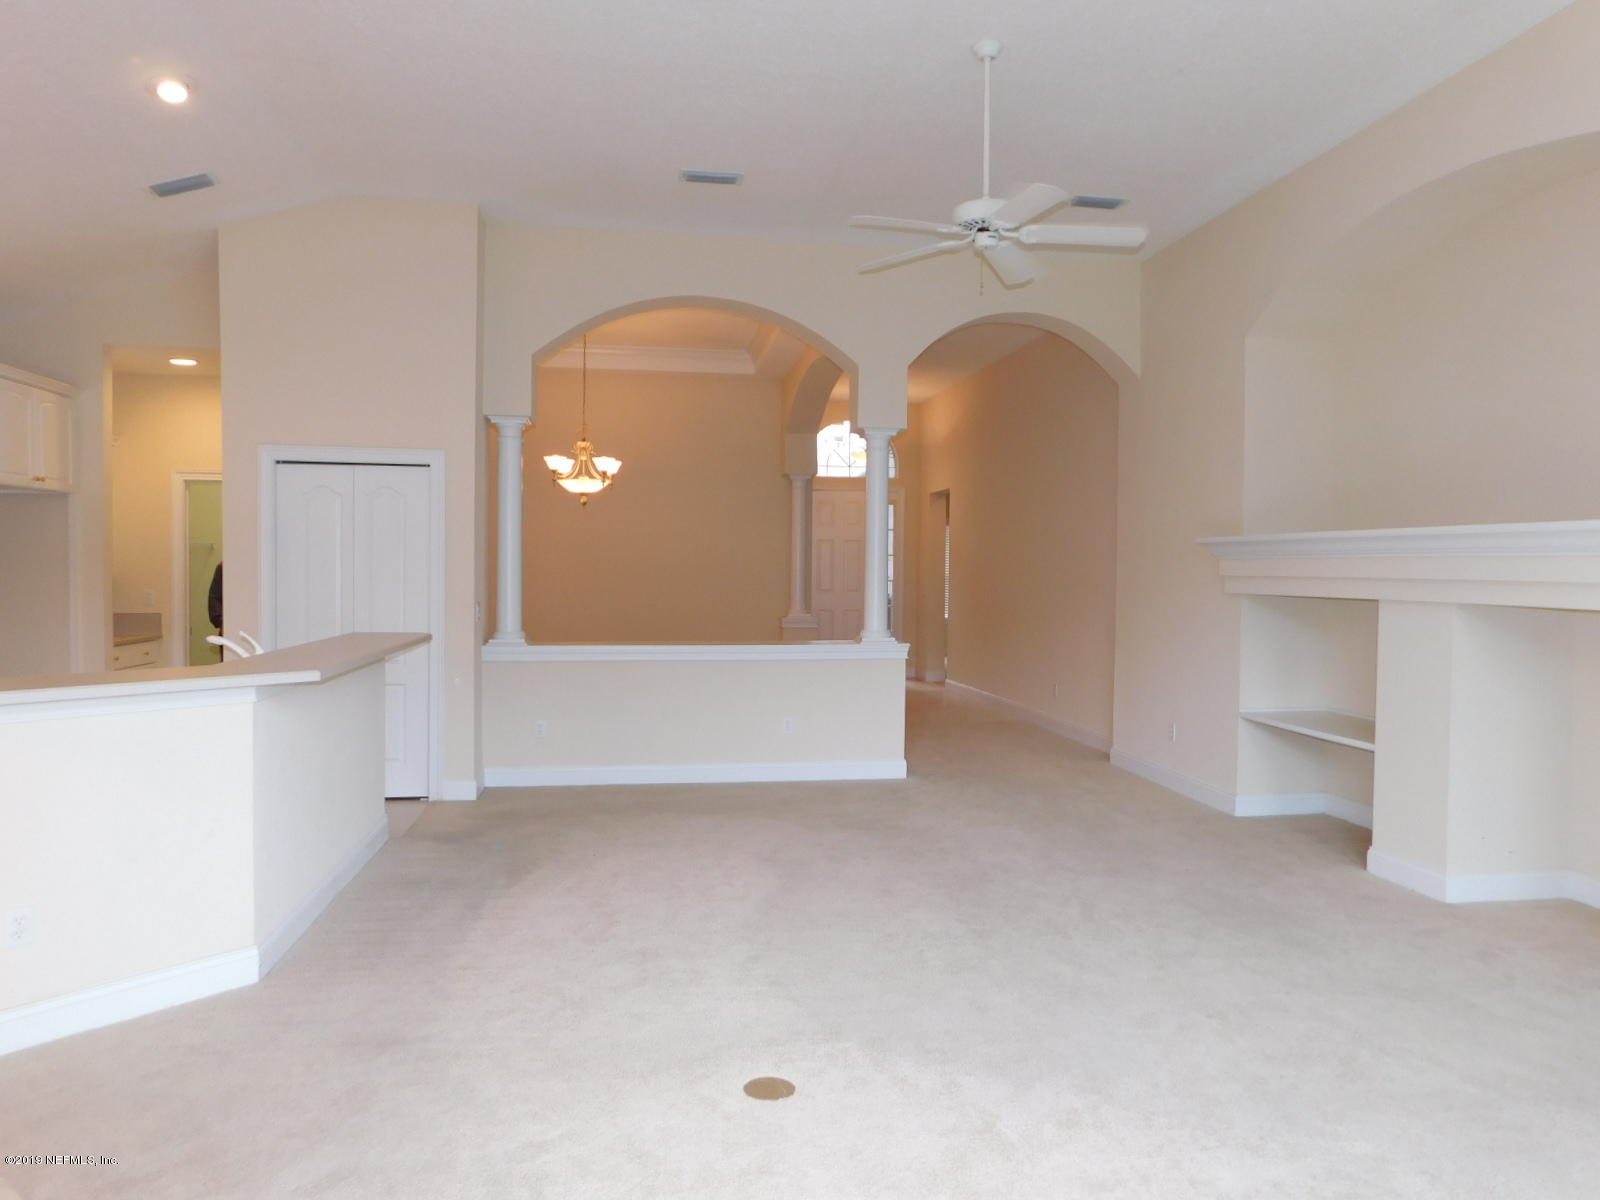 321 ISLAND GREEN, ST AUGUSTINE, FLORIDA 32092, 3 Bedrooms Bedrooms, ,2 BathroomsBathrooms,Residential - single family,For sale,ISLAND GREEN,980020